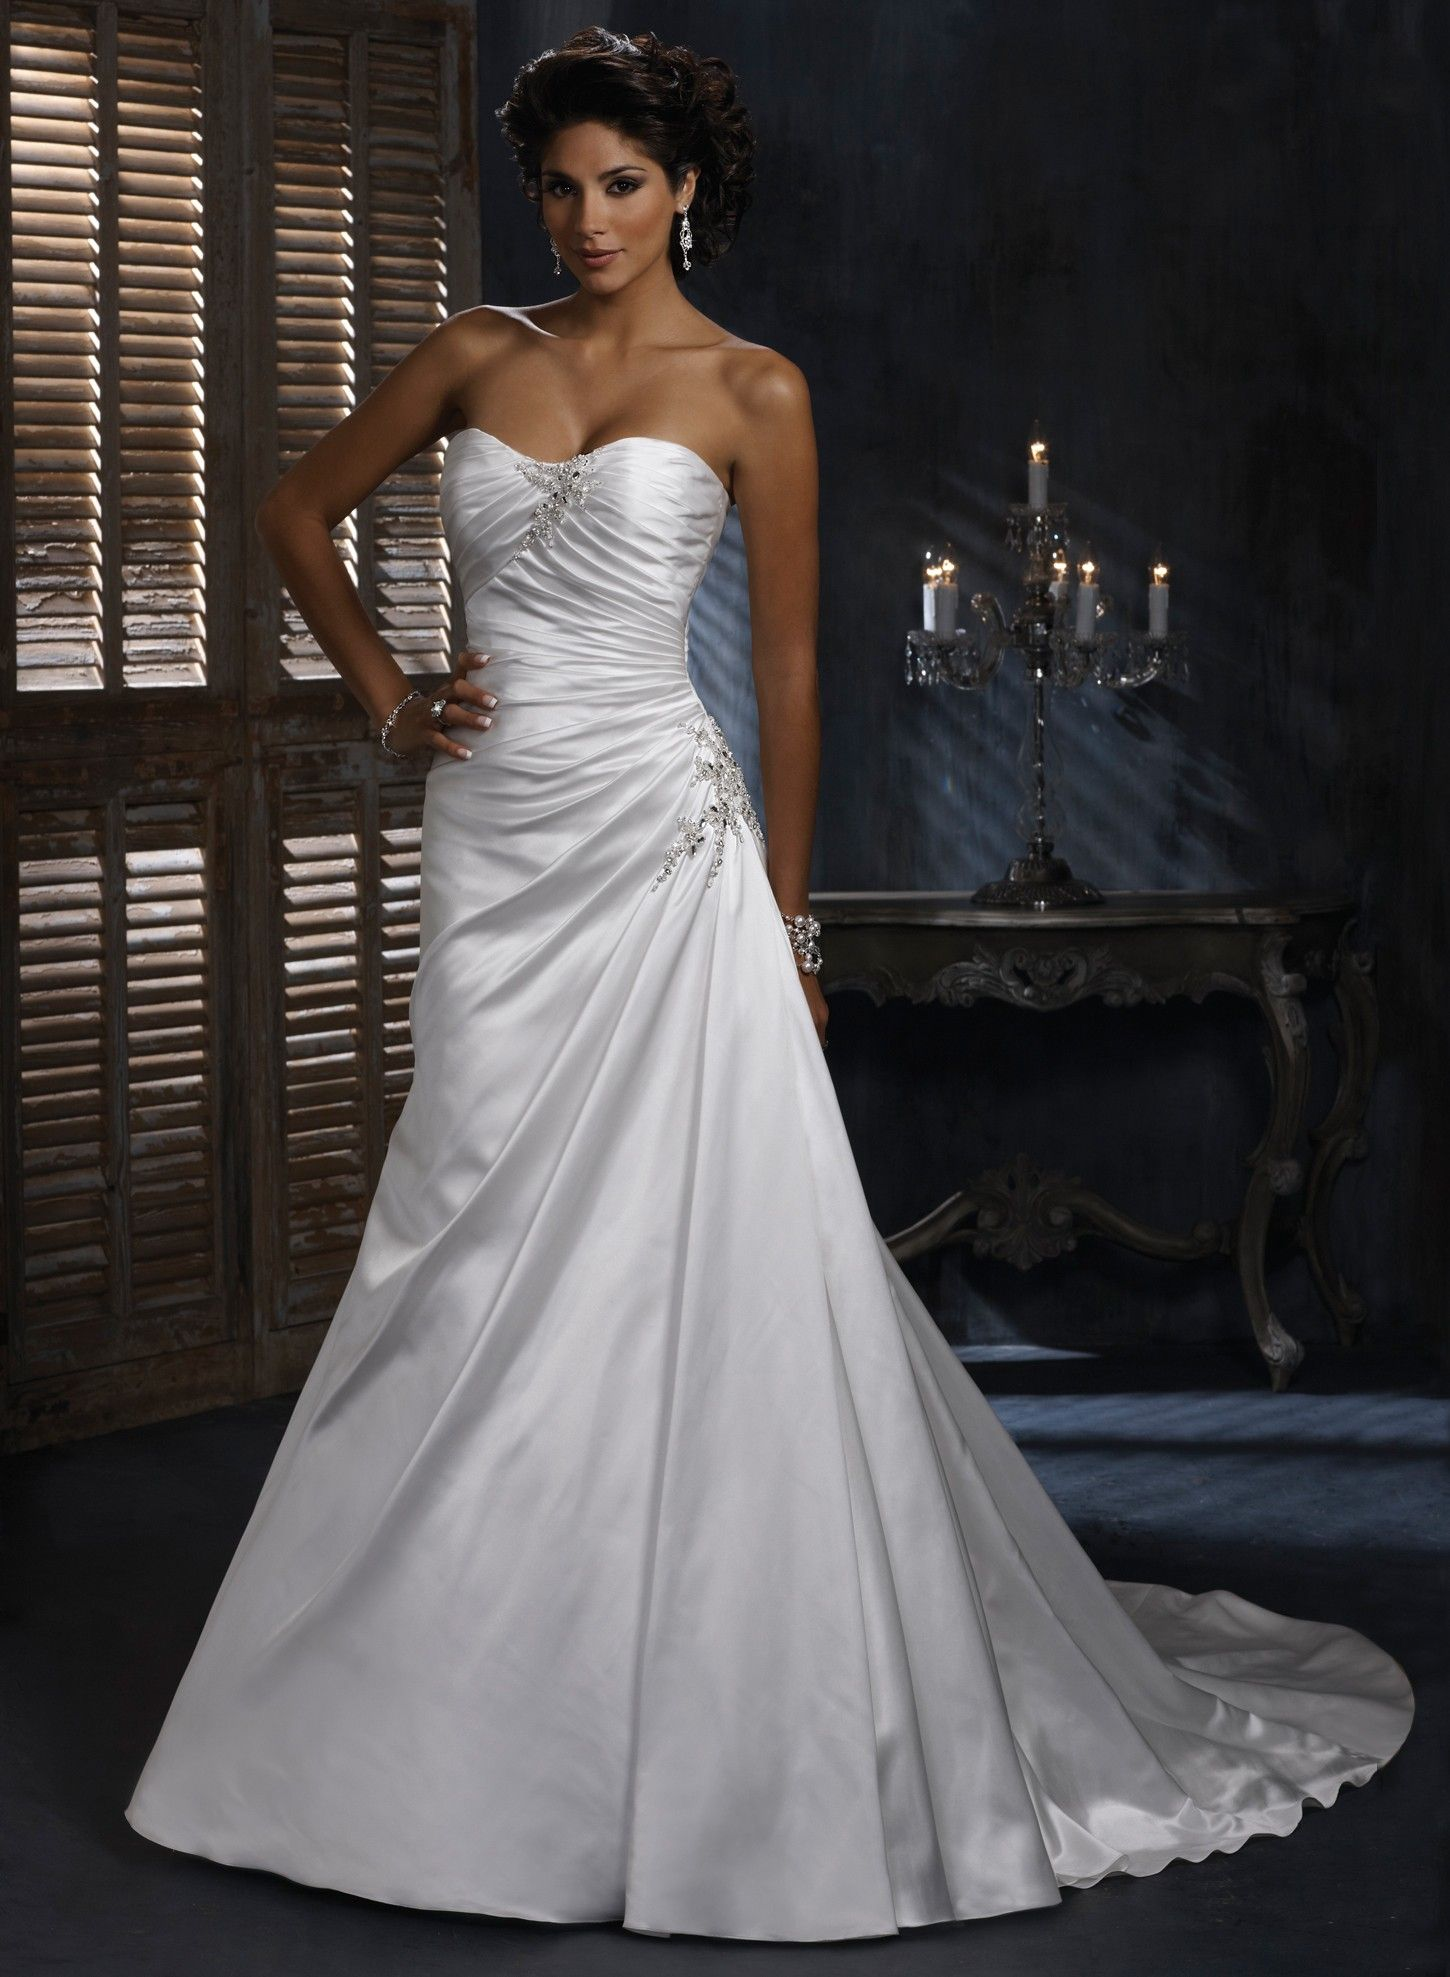 strapless wedding dresses Satin A line Dipped Strapless Neckline Wedding Dress